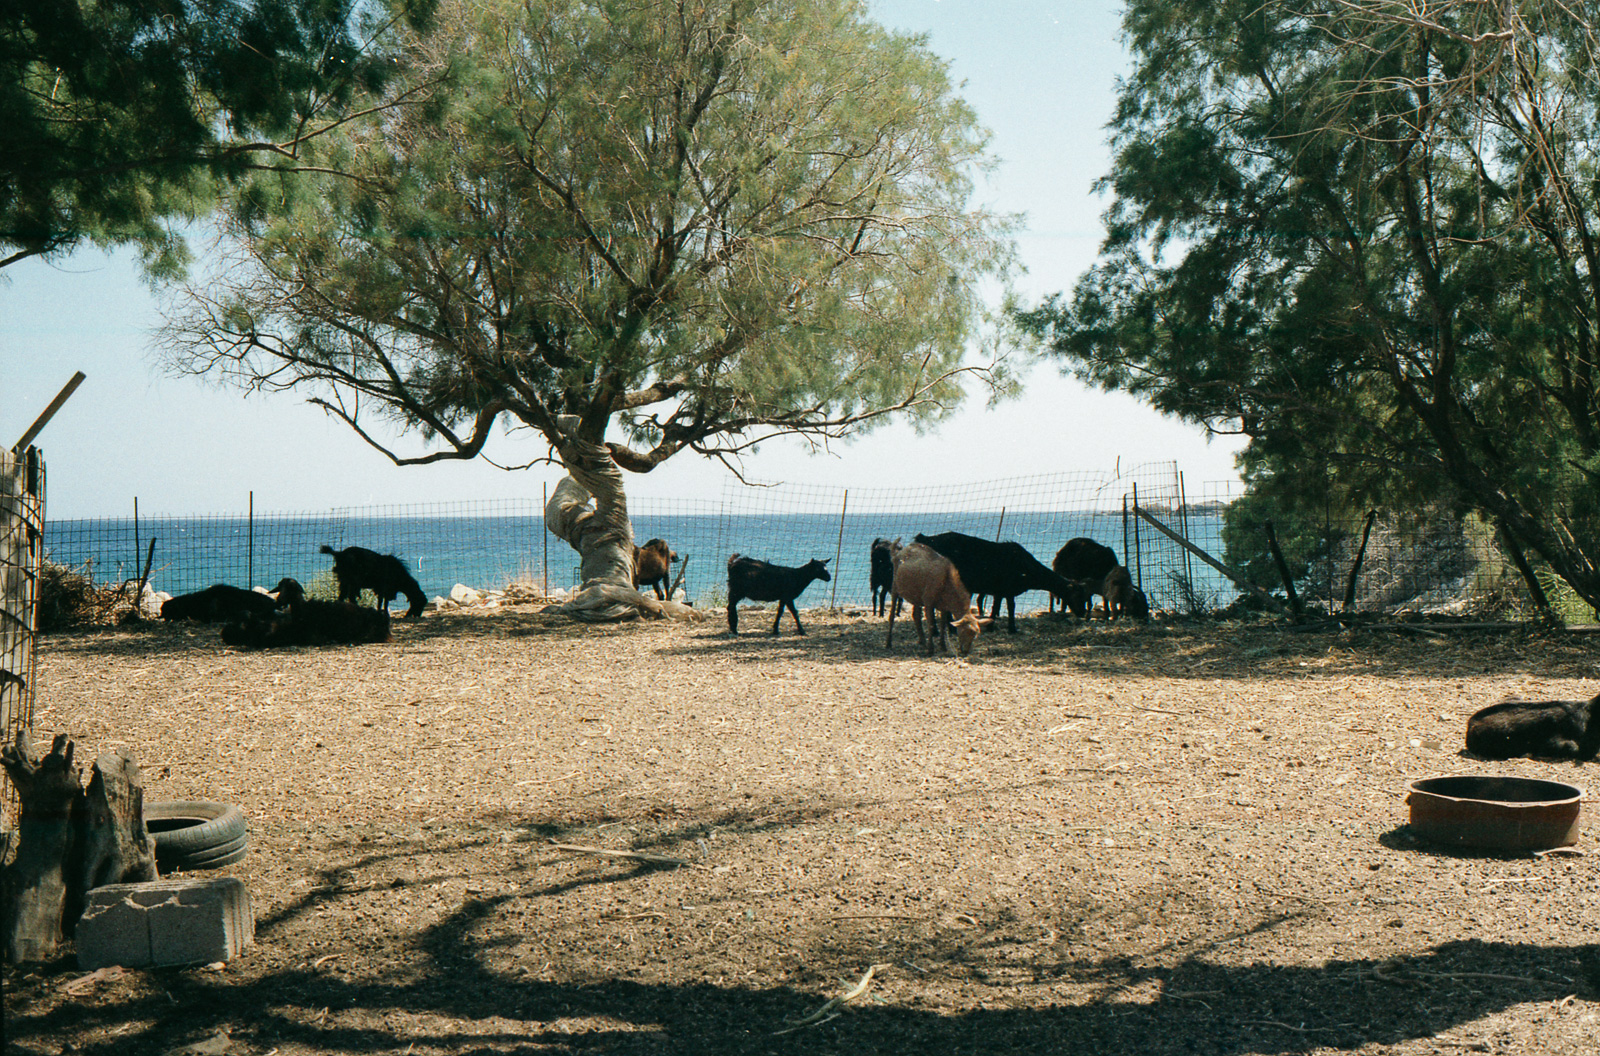 Goats by the ocean